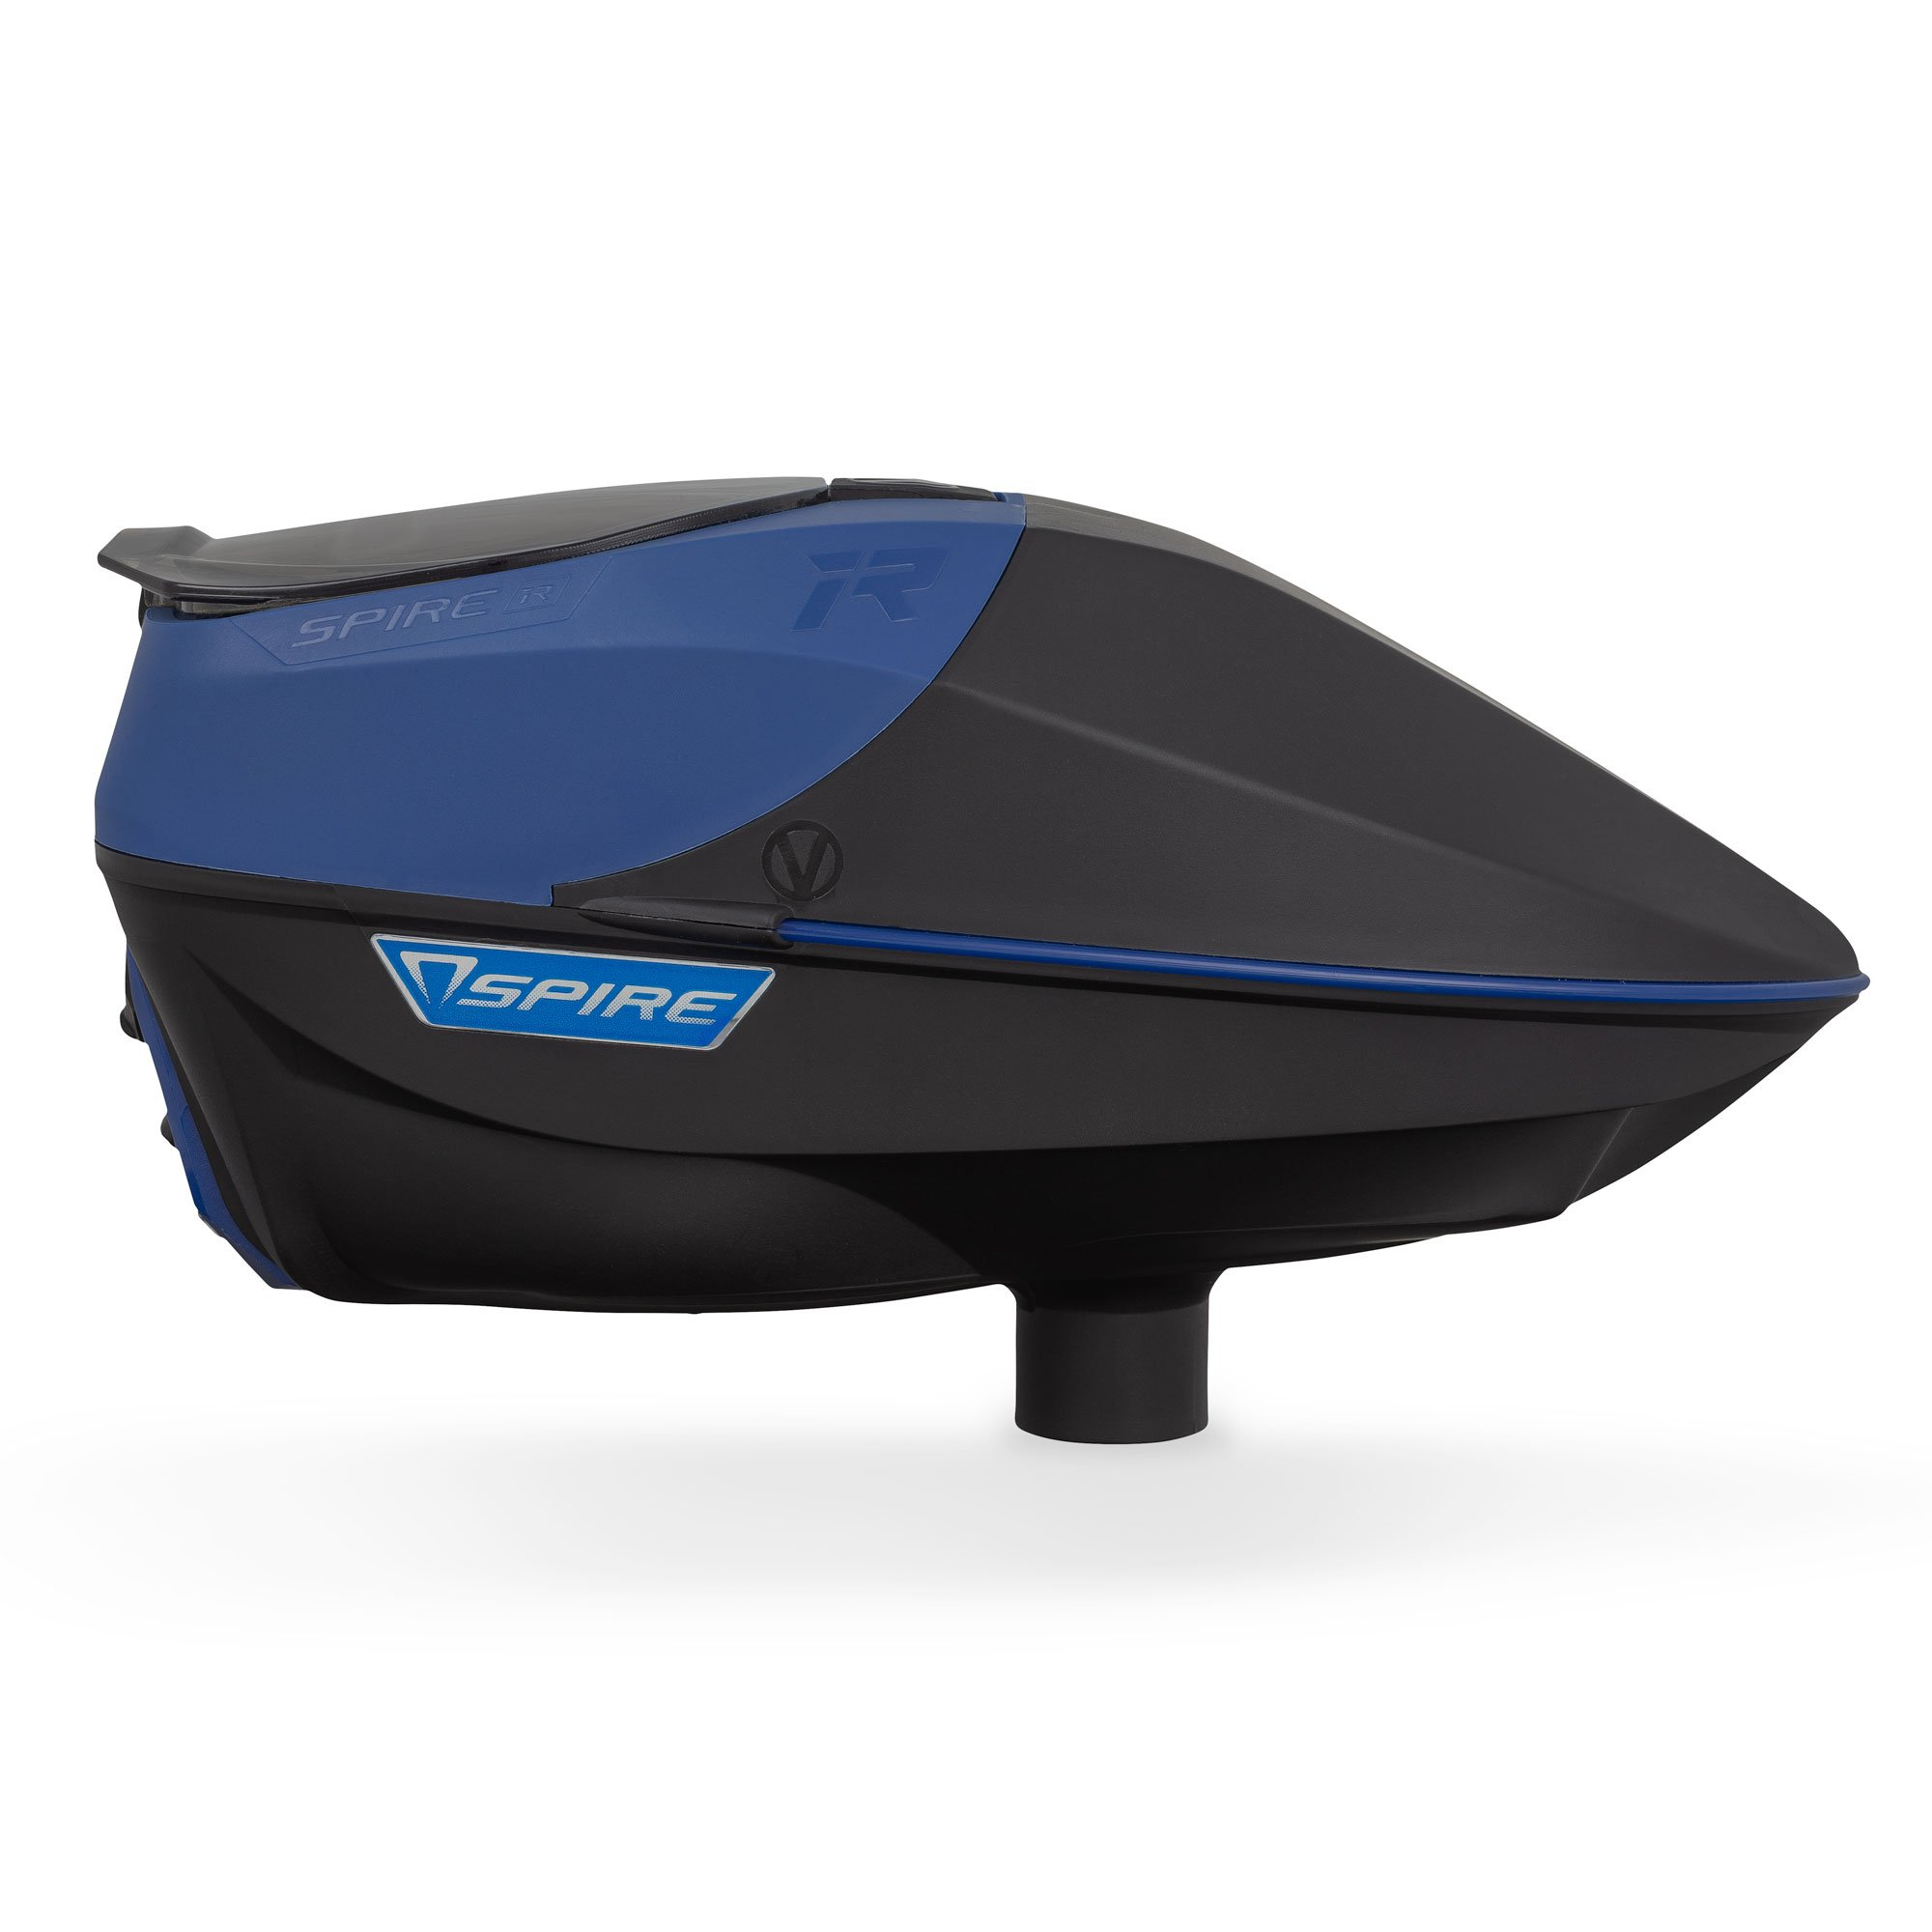 Virtue Spire Electronic Paintball Loaders/Hoppers (IR Blue/Black) by Virtue Paintball